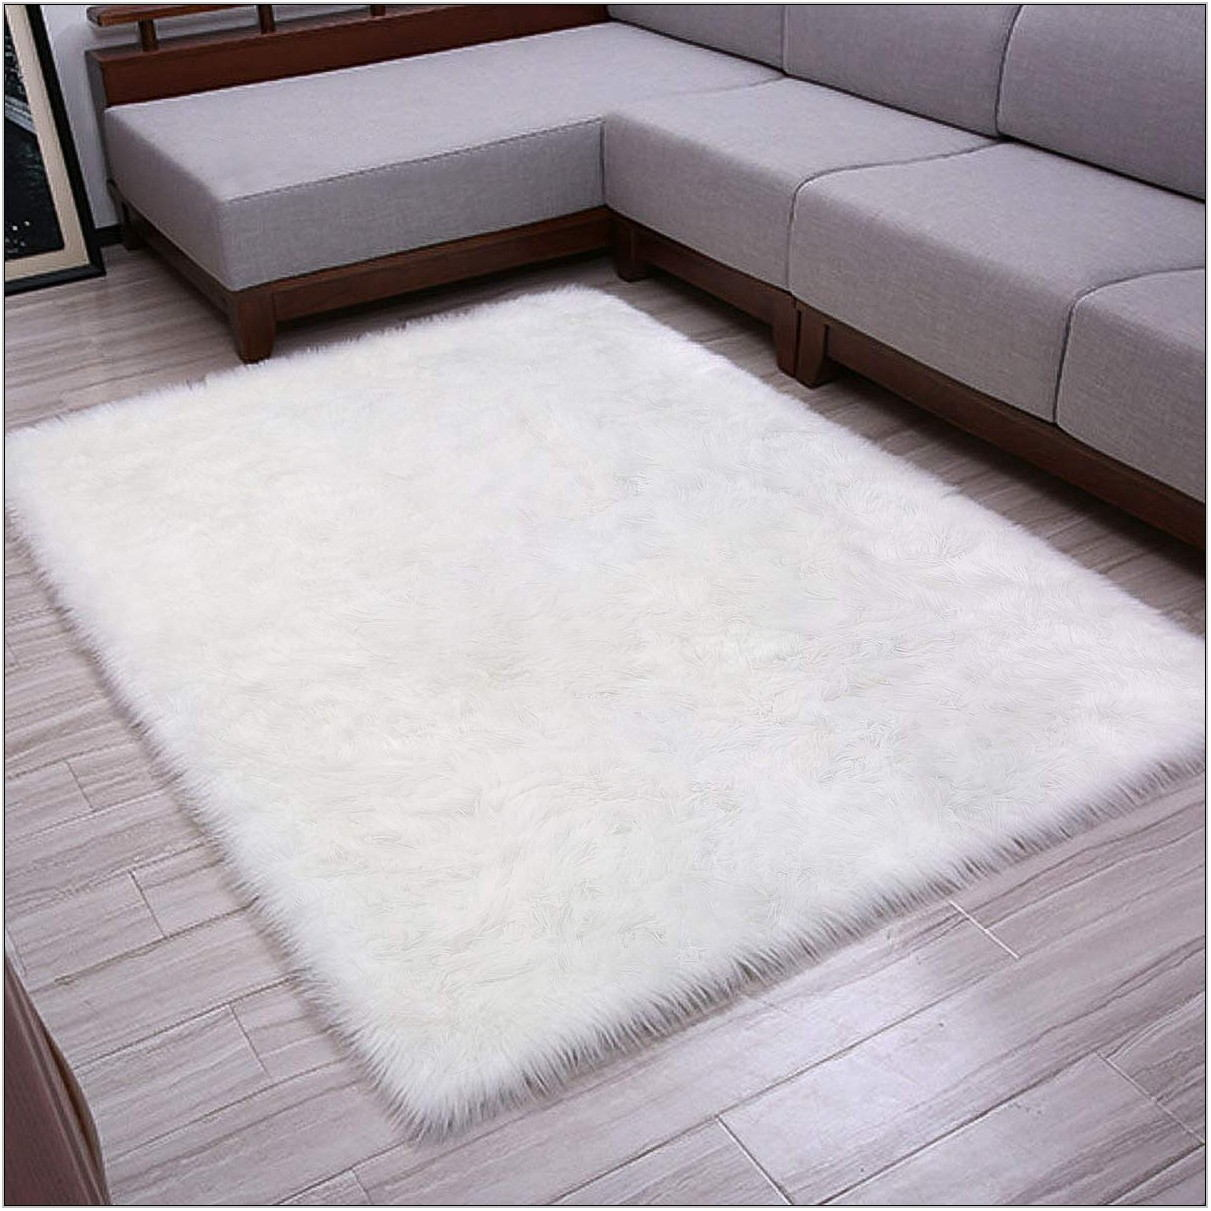 White Fluffy Rug For Living Room